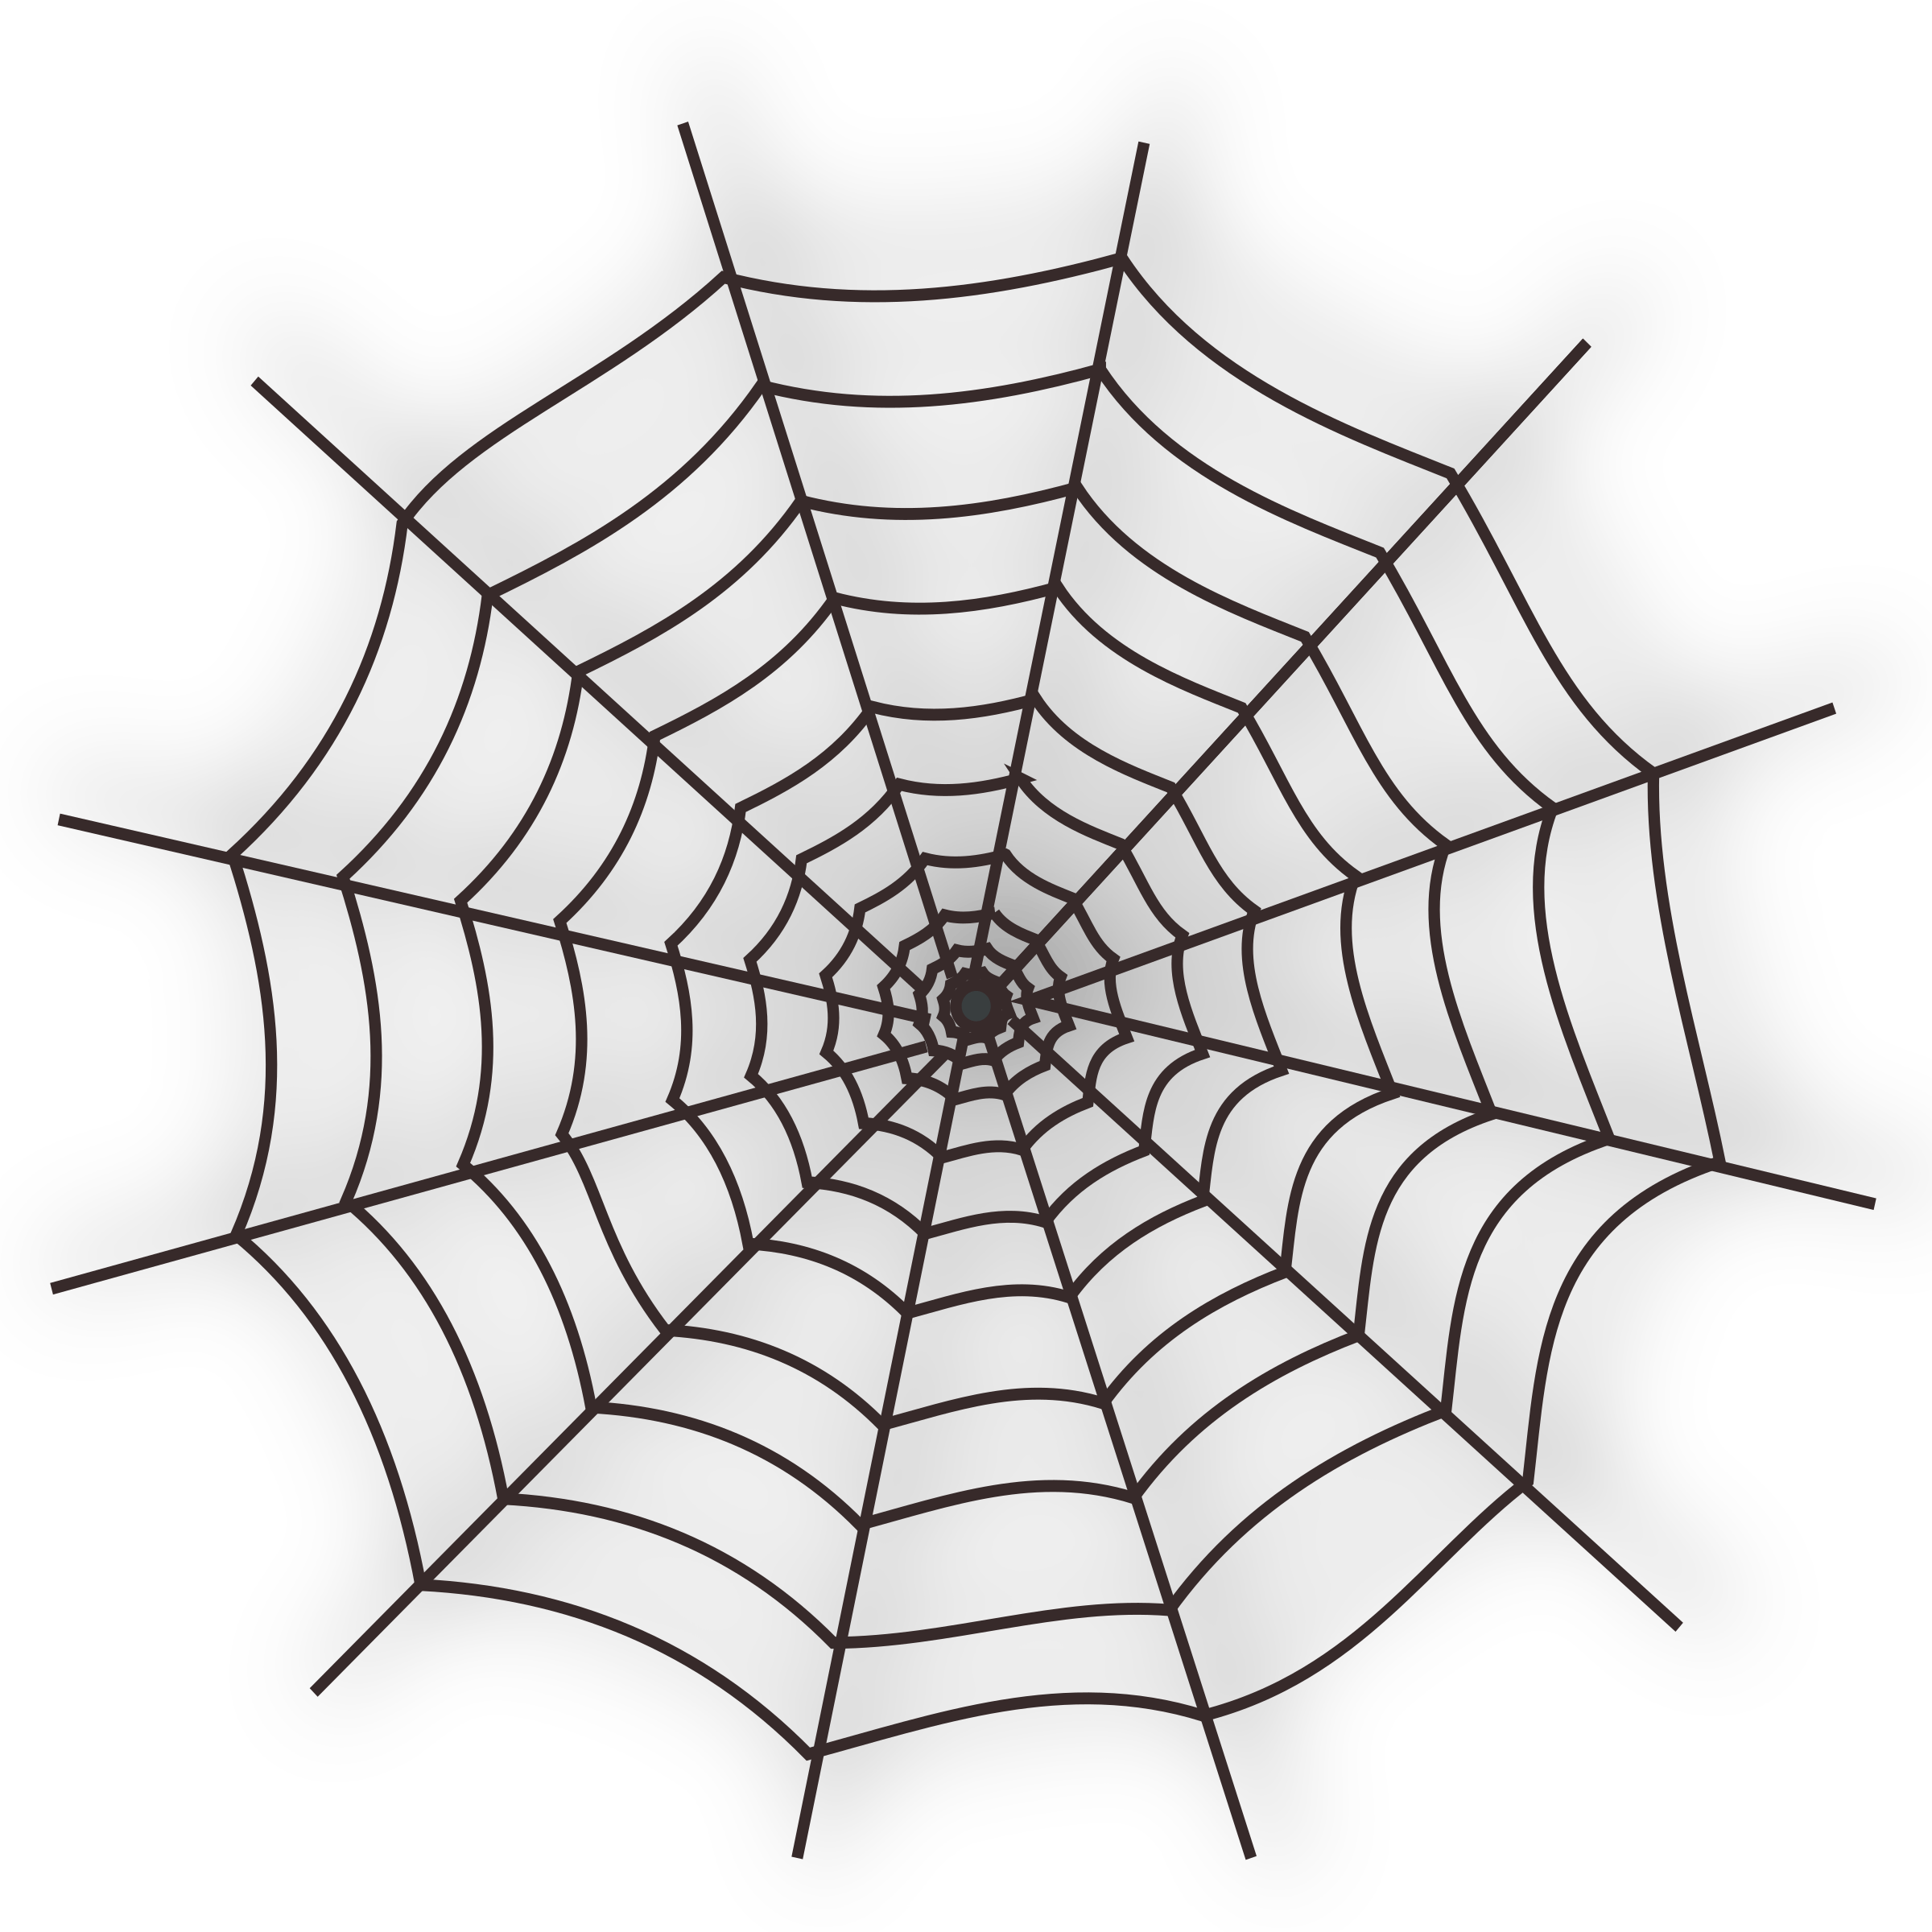 Halloween web clipart clipart royalty free Clipart - Halloween Spider Web Icon clipart royalty free